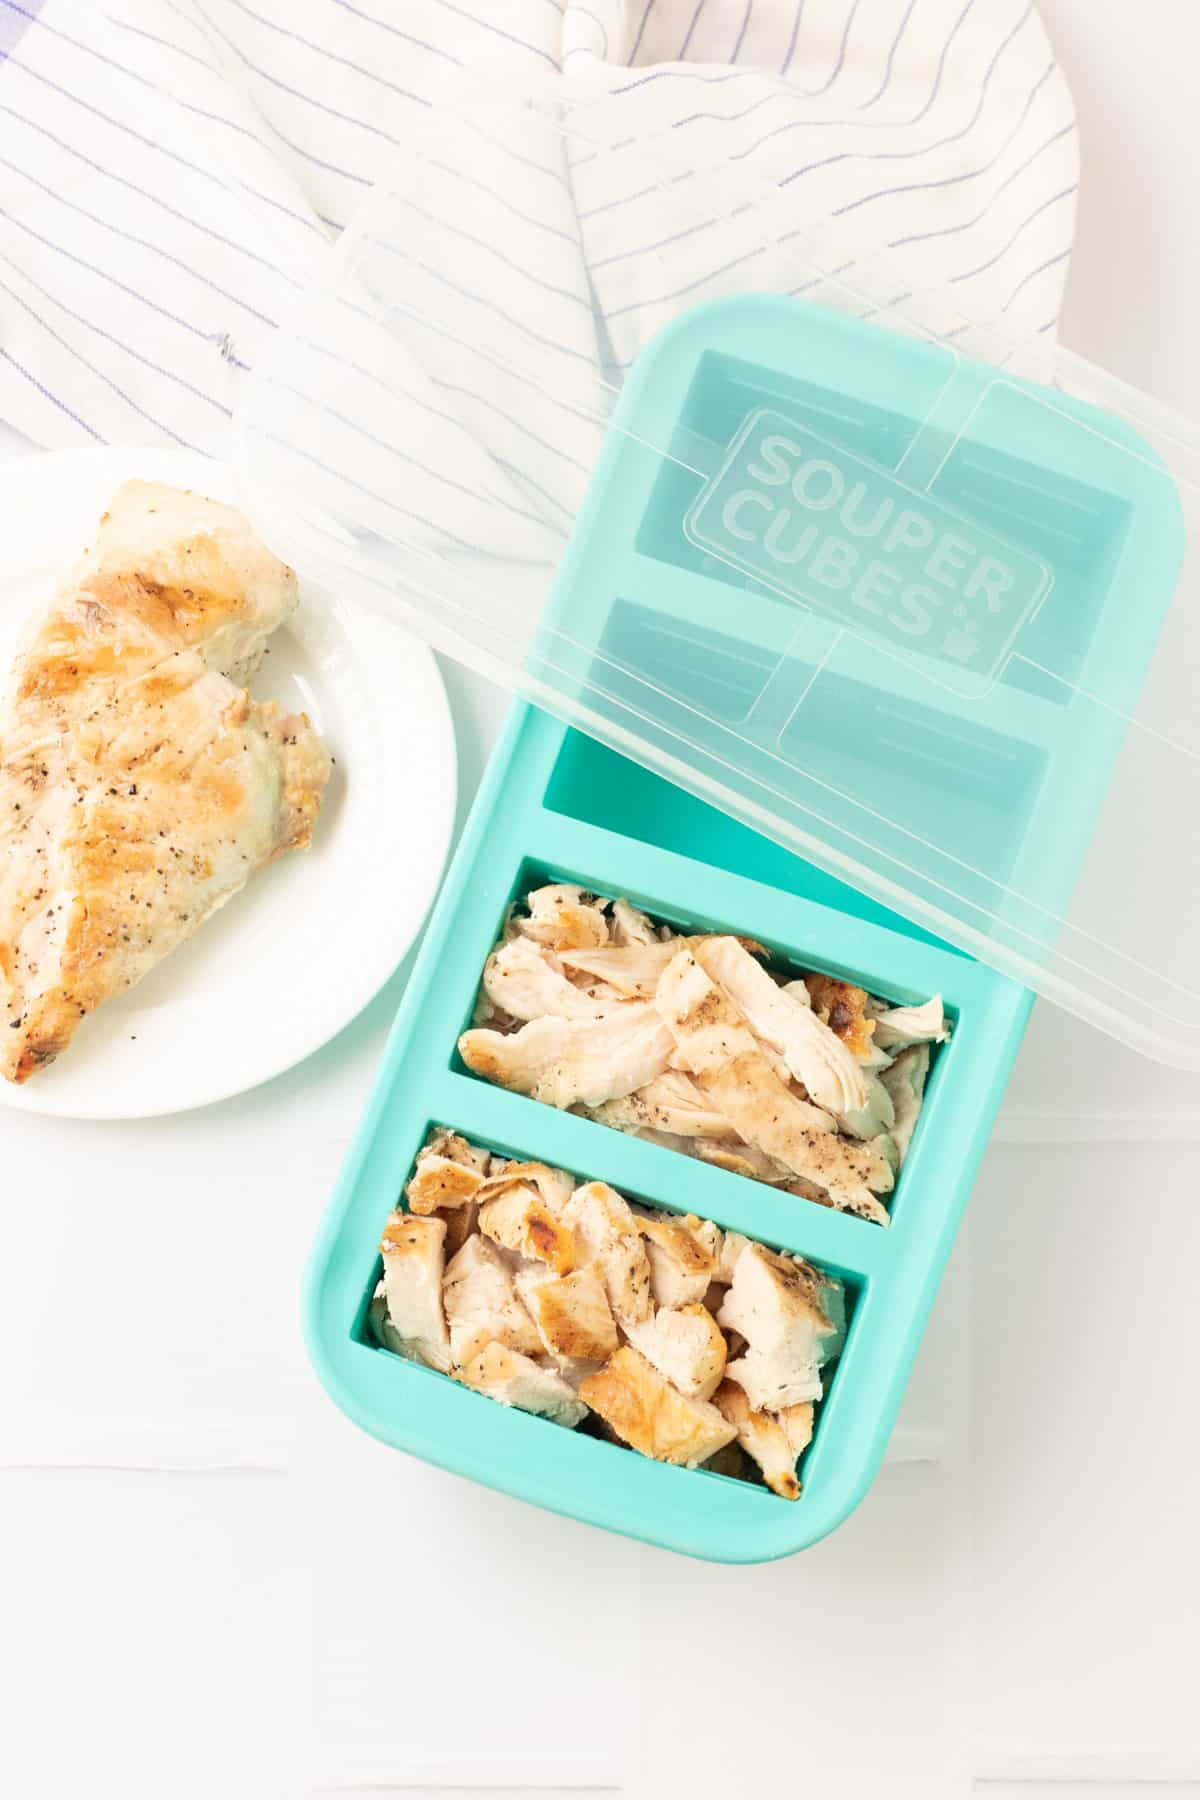 Aqua SouperCubes freezer tray with cubed and shredded chicken and clear lid on upper tray and single chicken breast on plate to left.